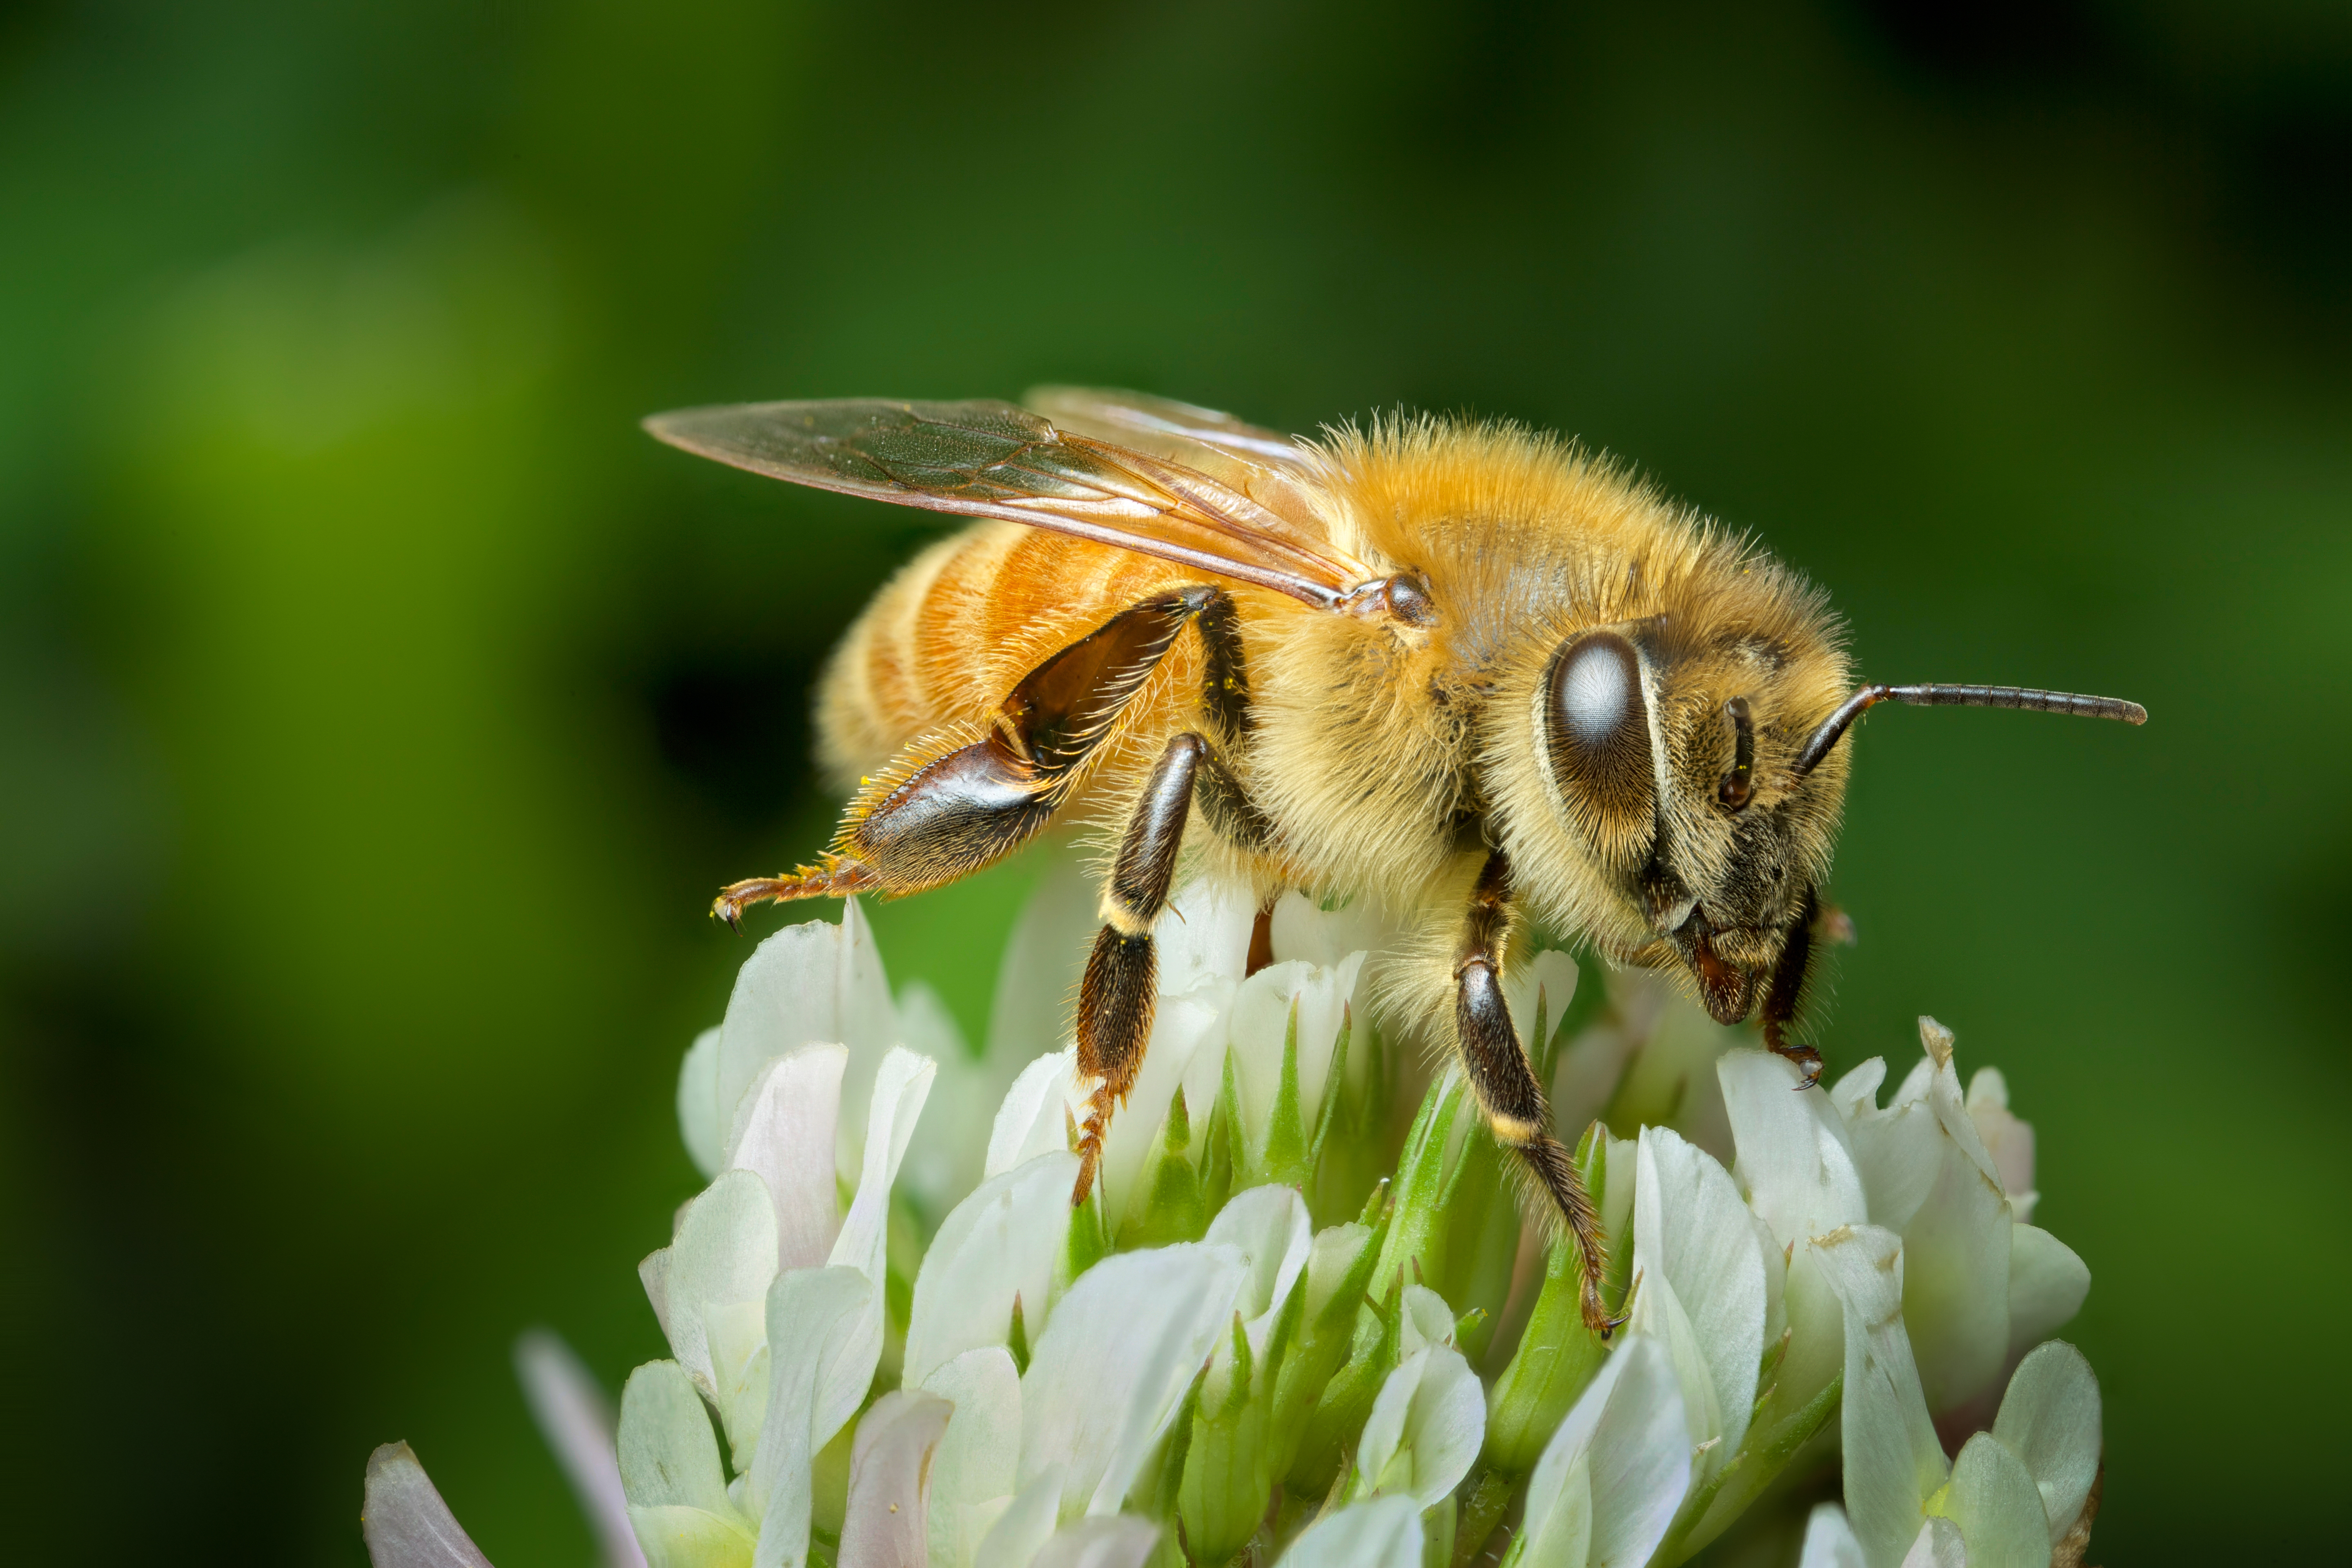 The components of bee venom that have been studied include melittin, adolapin, and apamine.